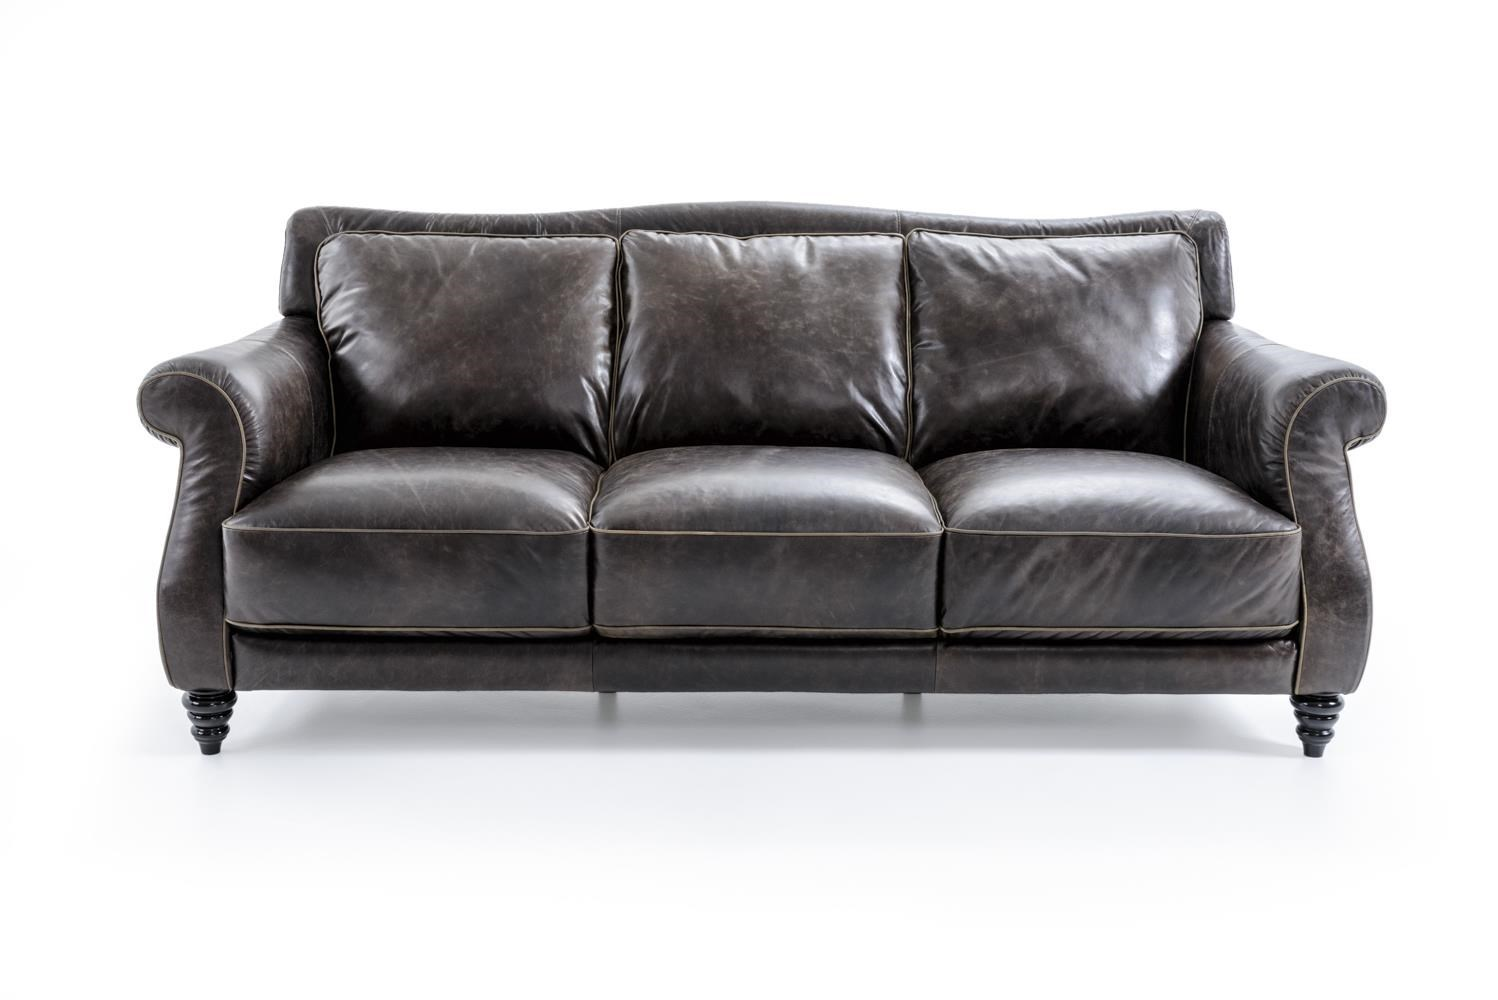 camel back sofa with rolled arms www energywarden net 4 Seater Sofa Narrow Shaped Sectional Sofa